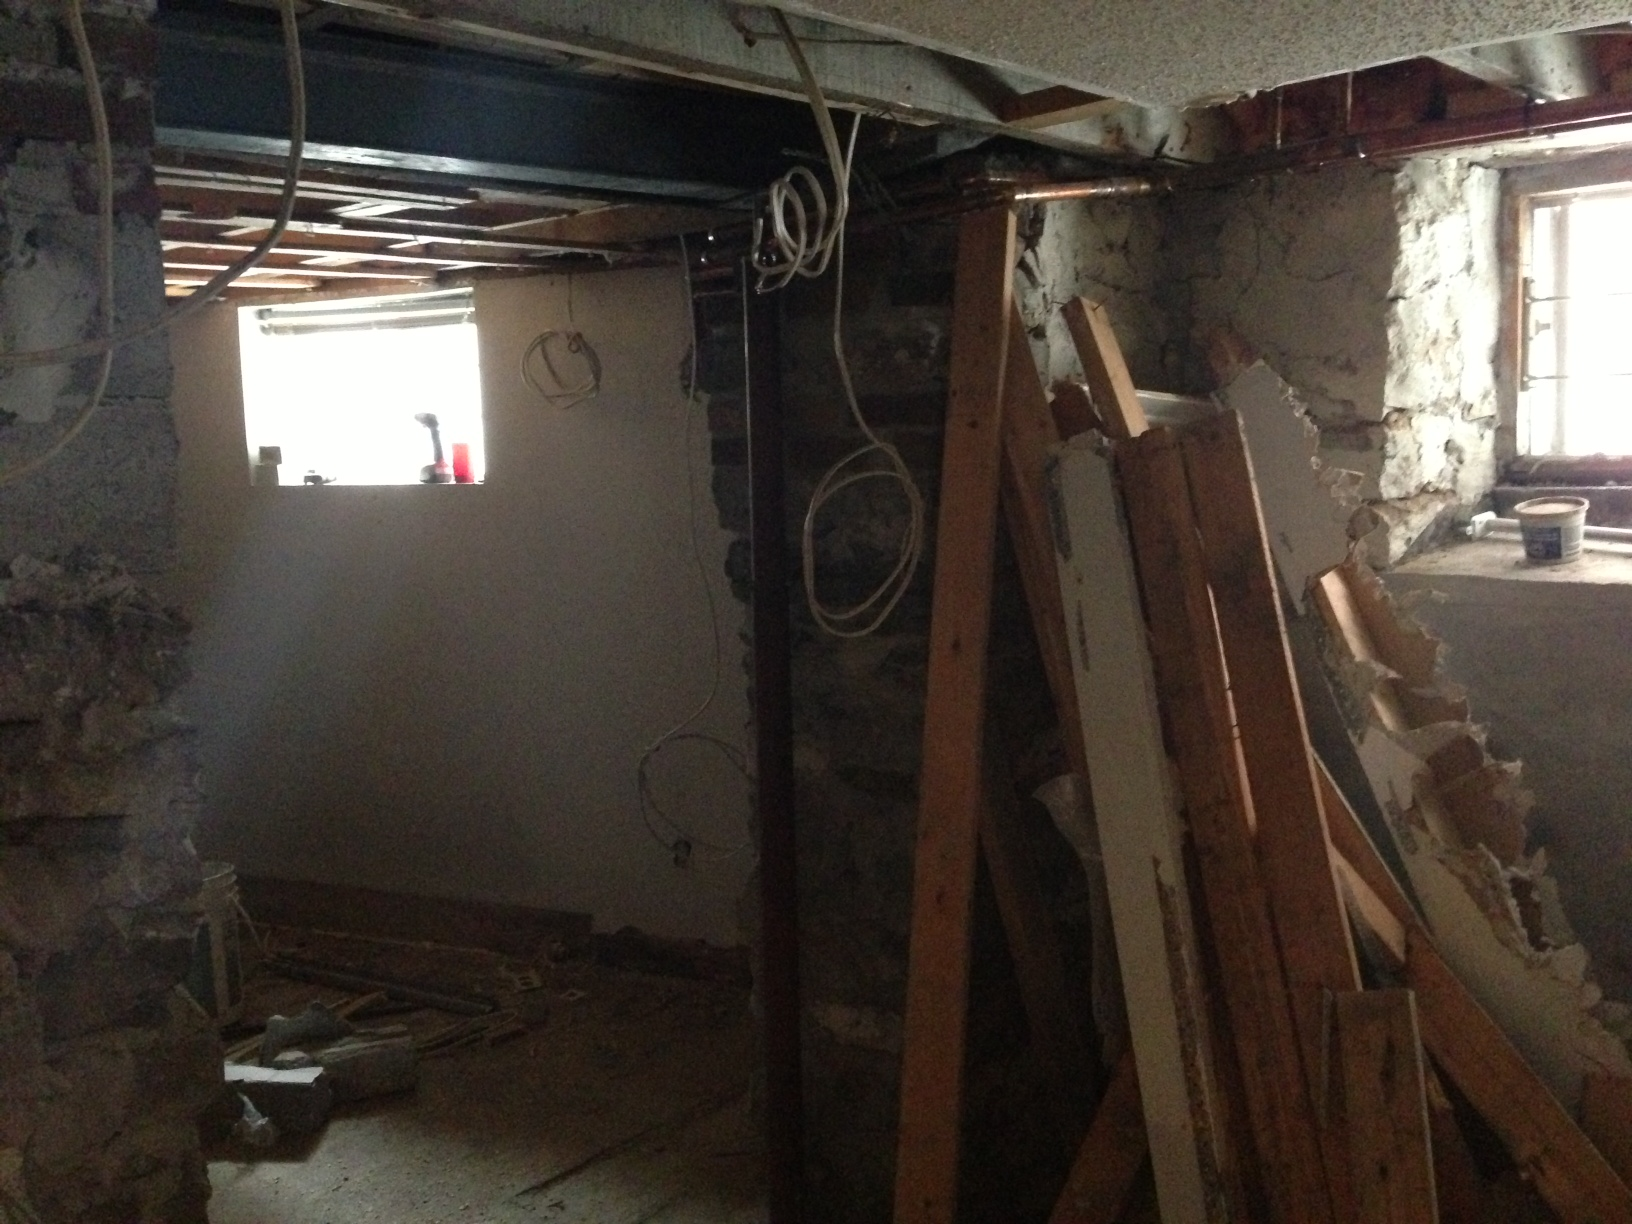 The End Of A Basement Apartment Renovation